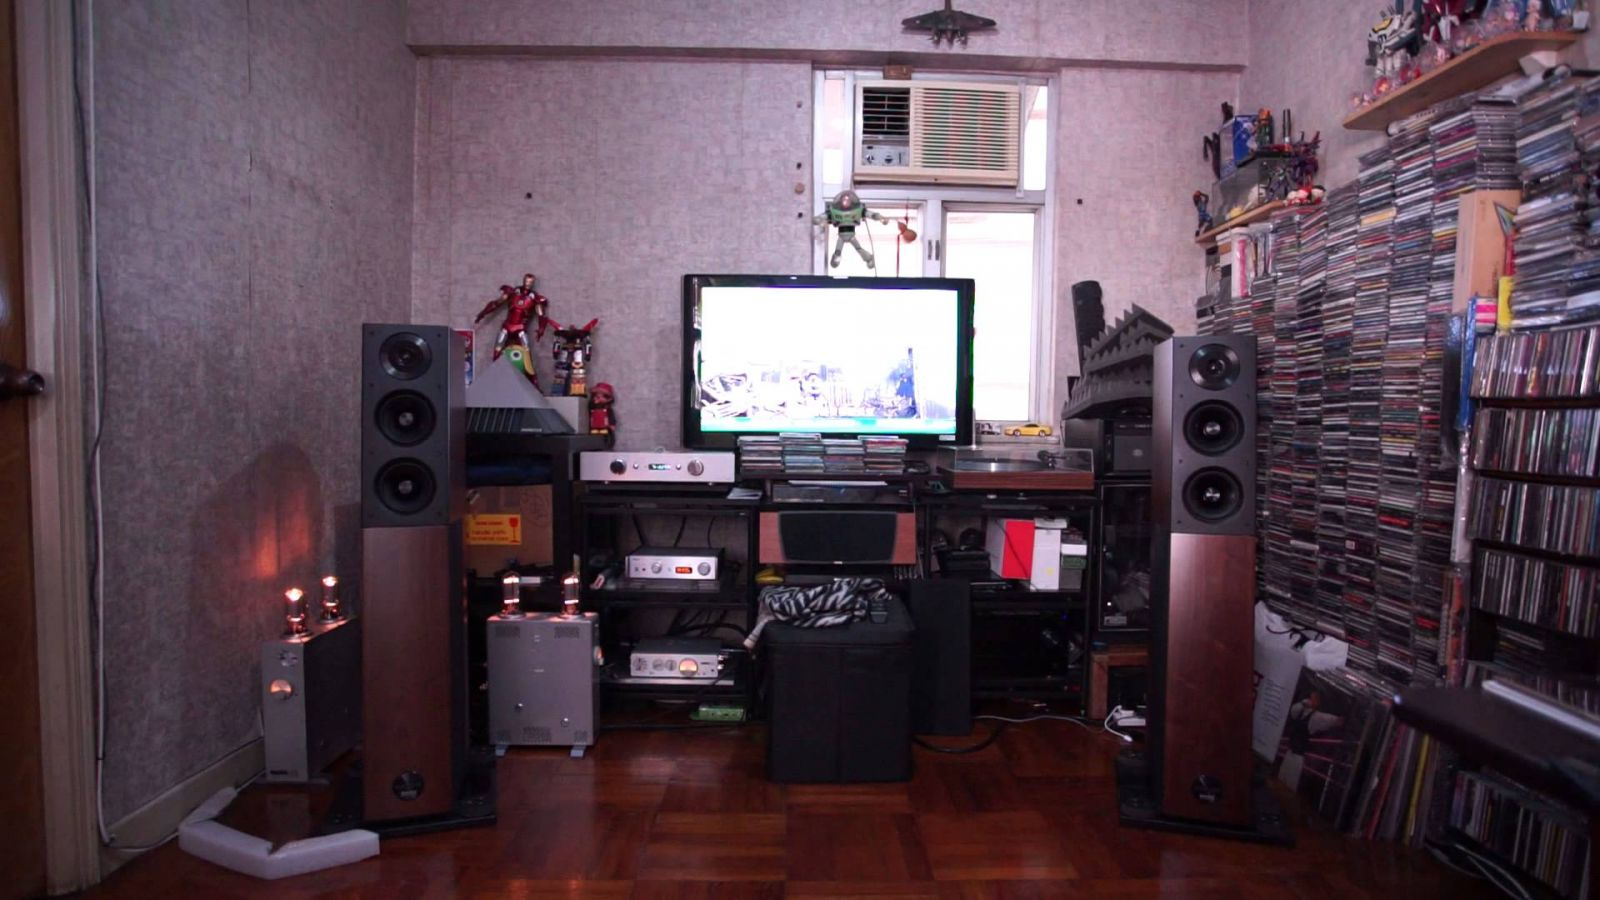 Loa Audio Physic Avantera plus cuon hut